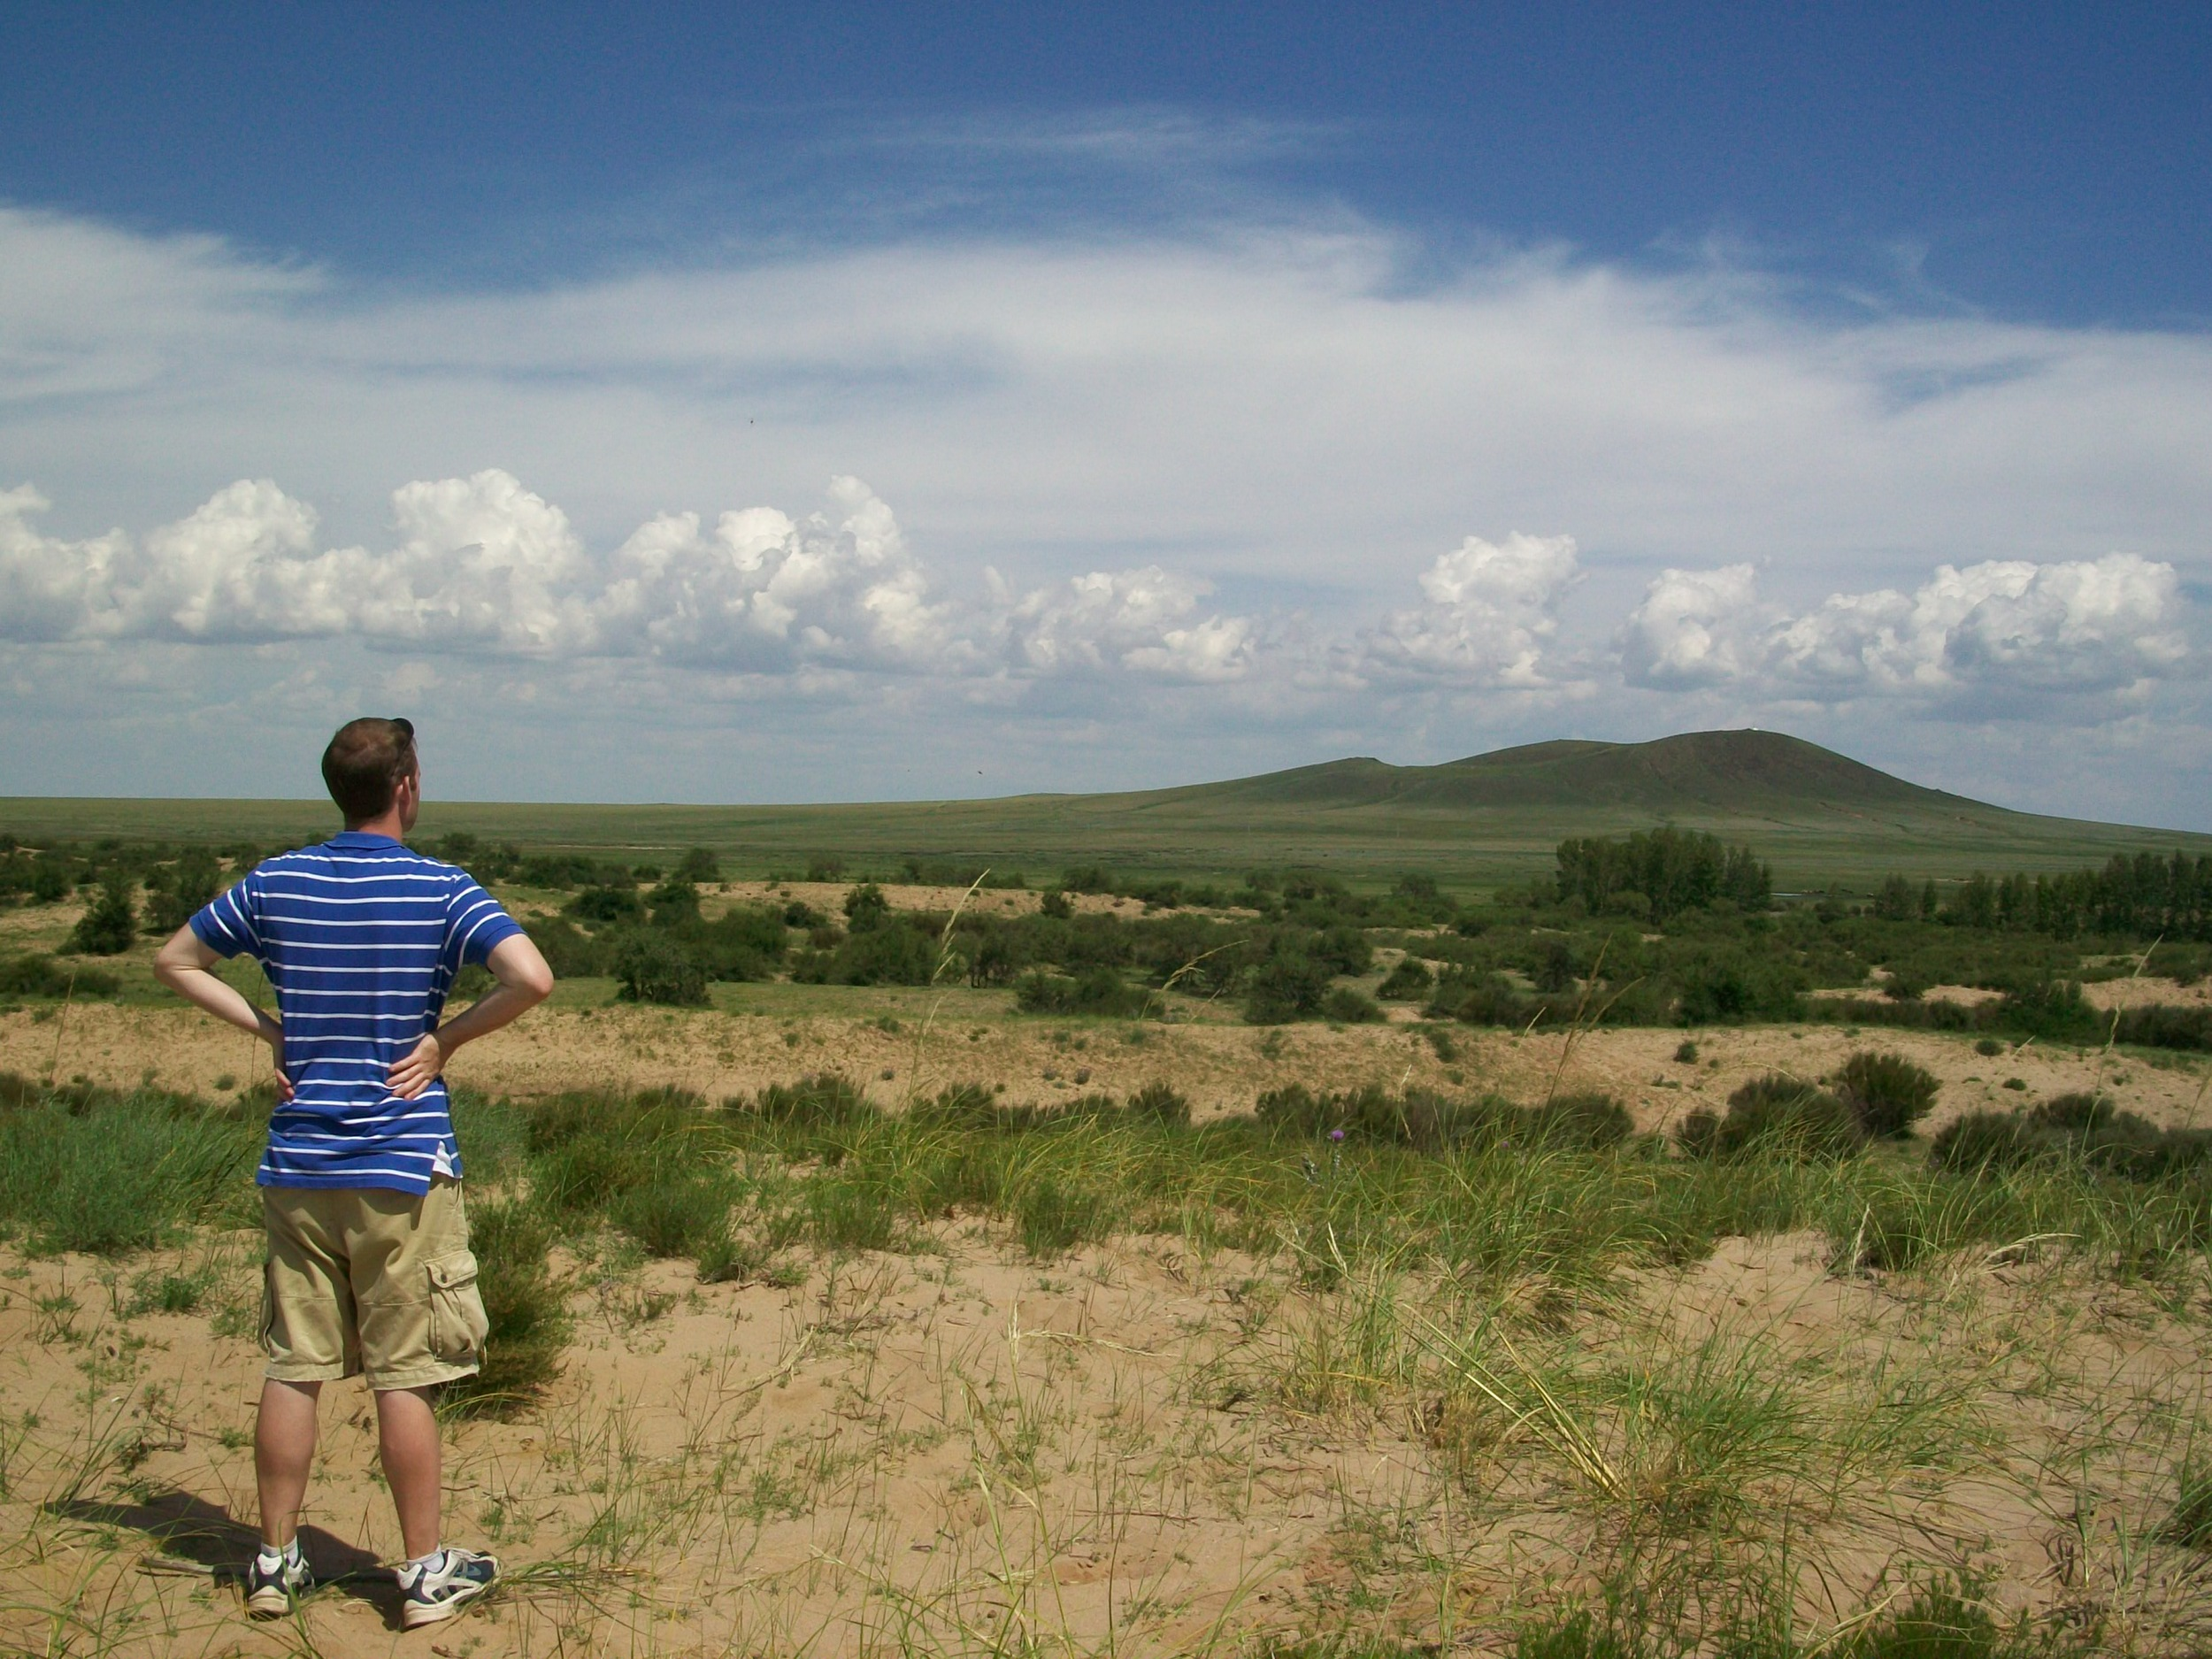 Travis enjoying the view in Mongolia.